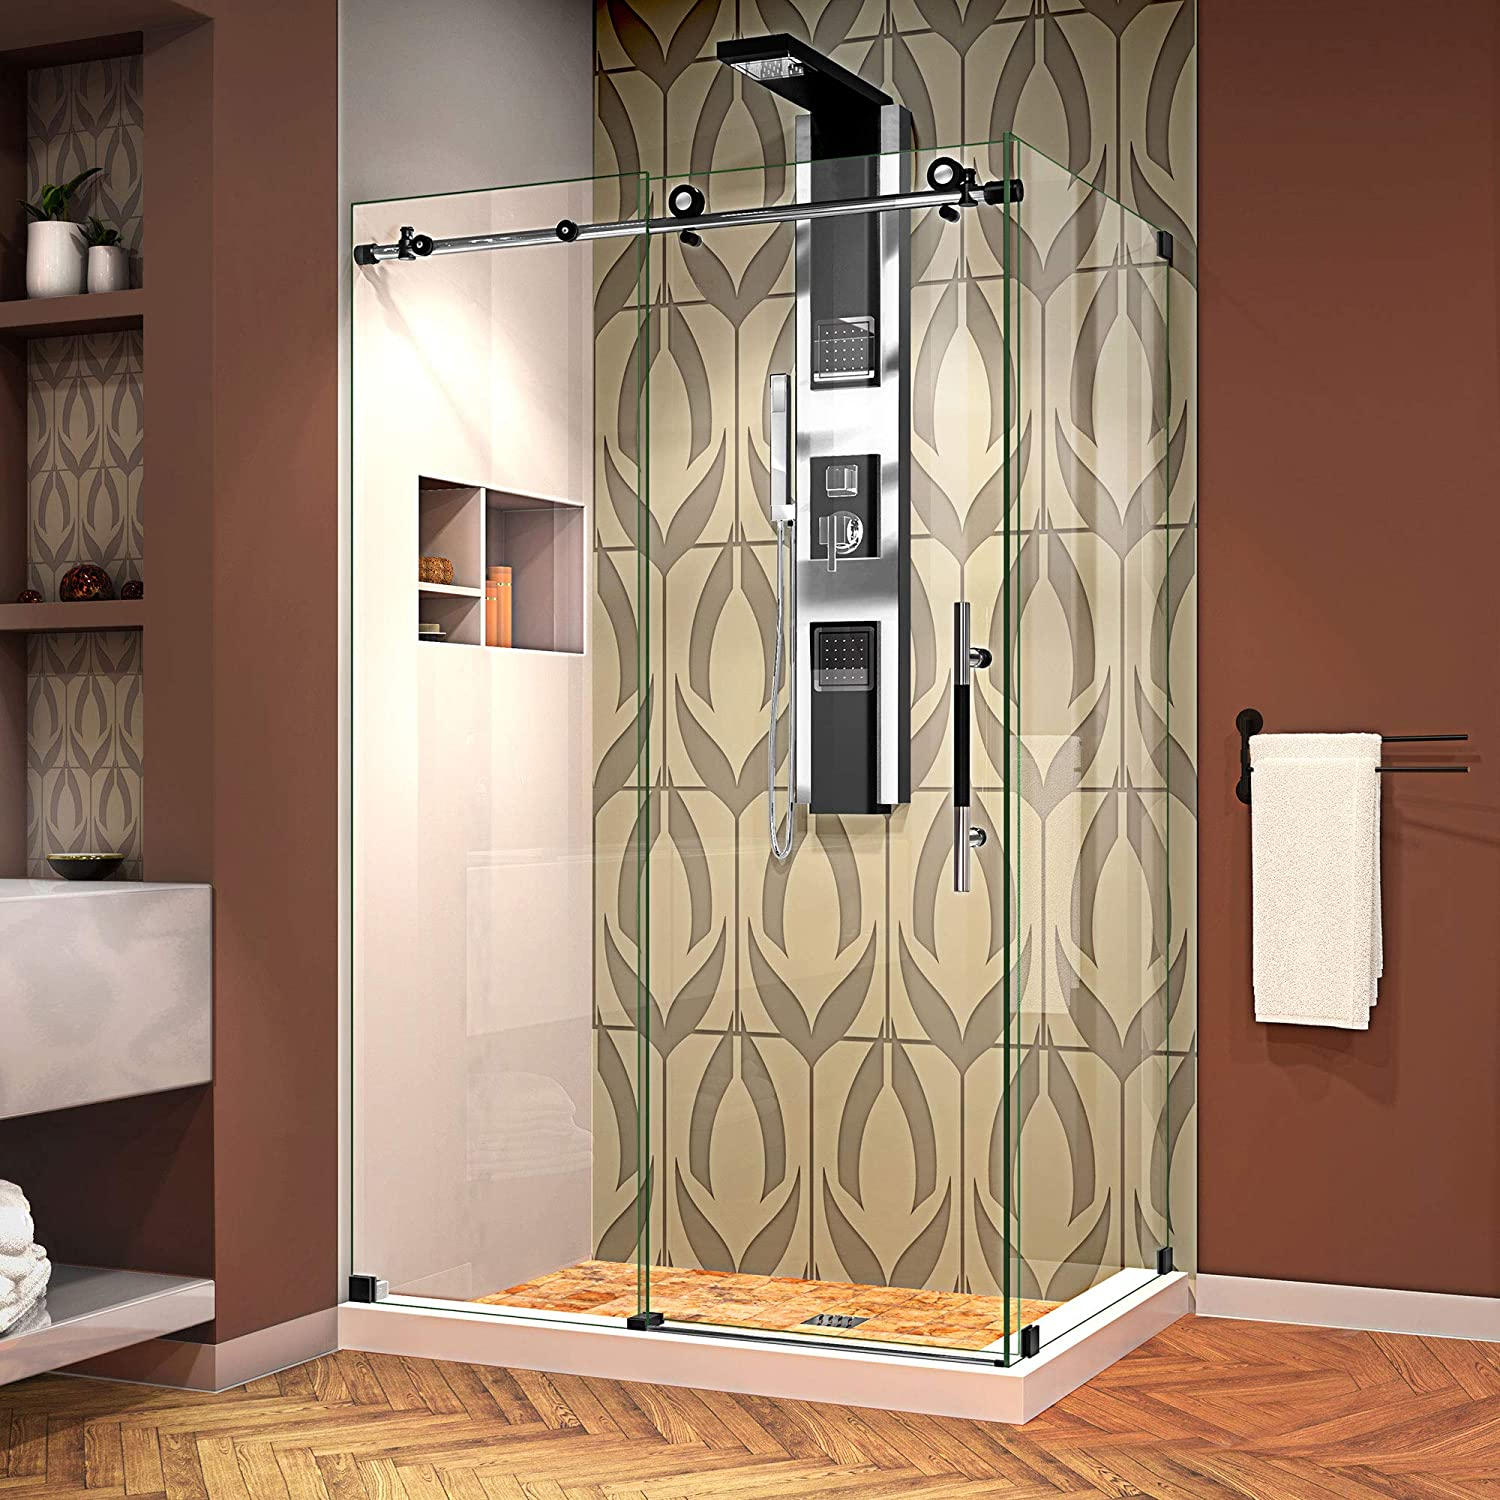 DreamLine SHEN-6134480-18 Enigma-XT 34 1 2 in. by 48 Fully Frameless Sliding Enclosure, Clear 3 8 in. Glass Shower, Tuxedo Finish, 44 3 8-48 W x 34.5 D